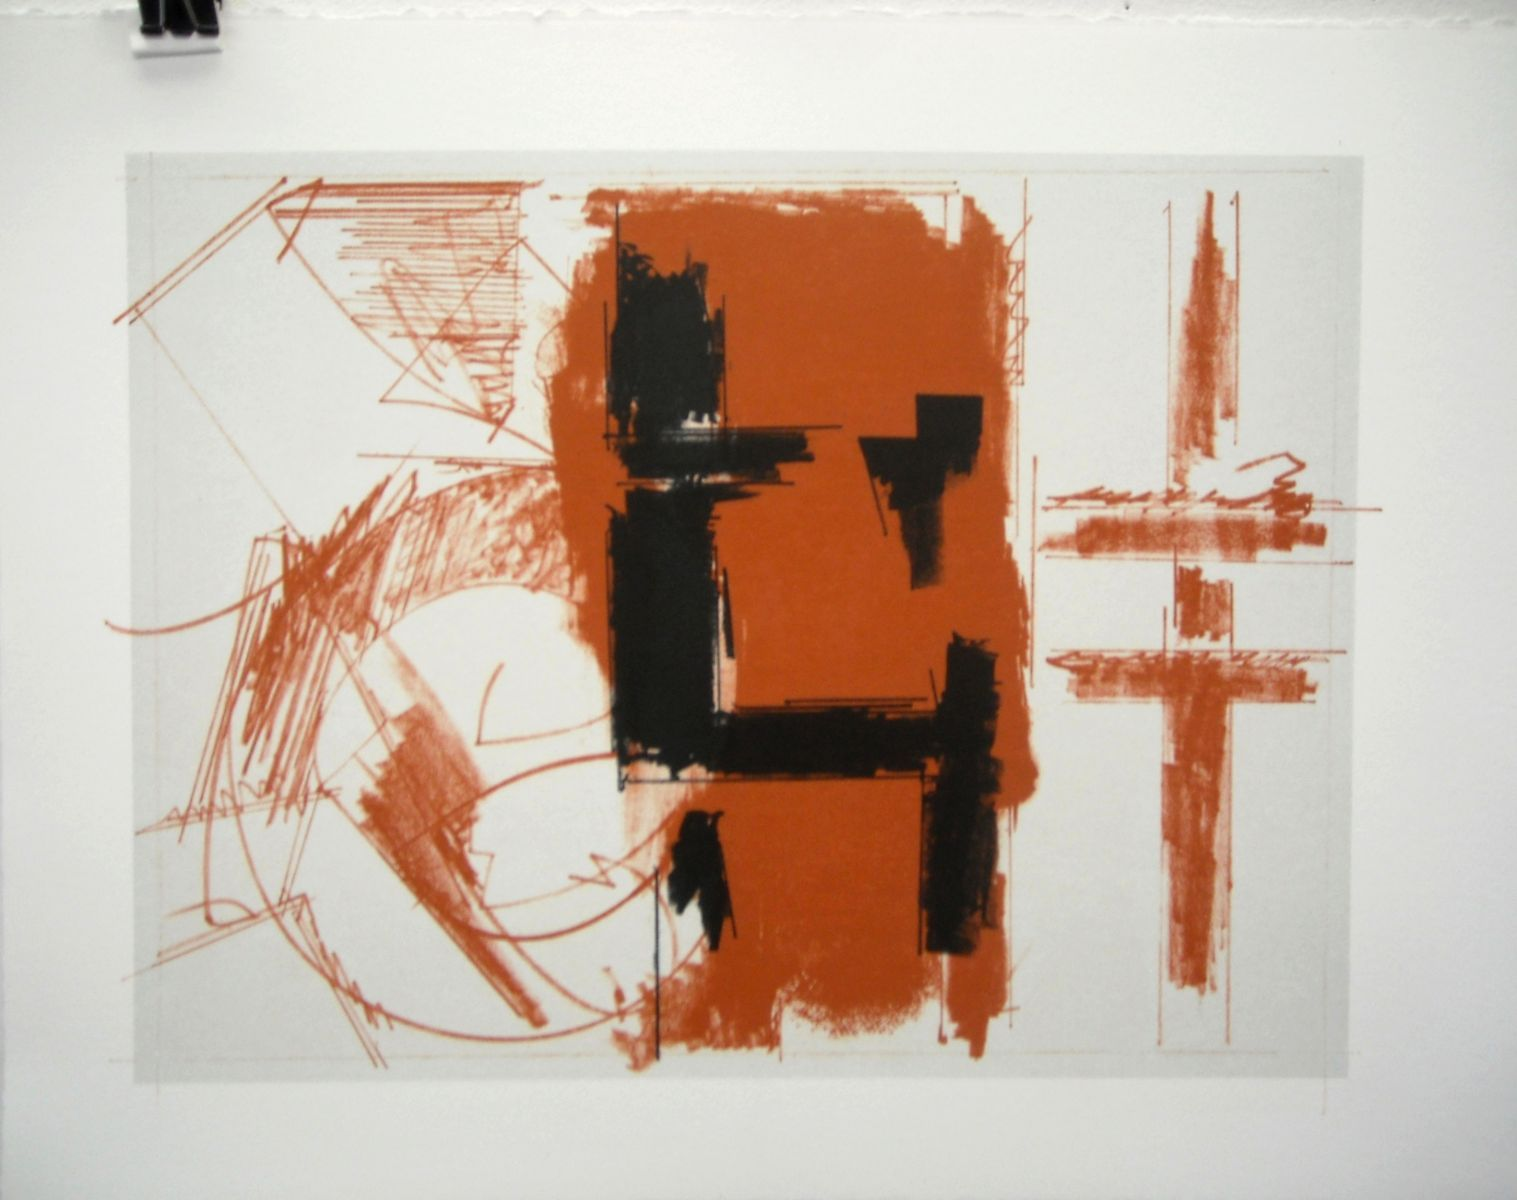 "FIGURE of OUTWARD for CO i 2013 12 x 15"" 3 color lithograph / Tim HIGBEE , printer note : CO = Charles Olson , poet of Gloucester"